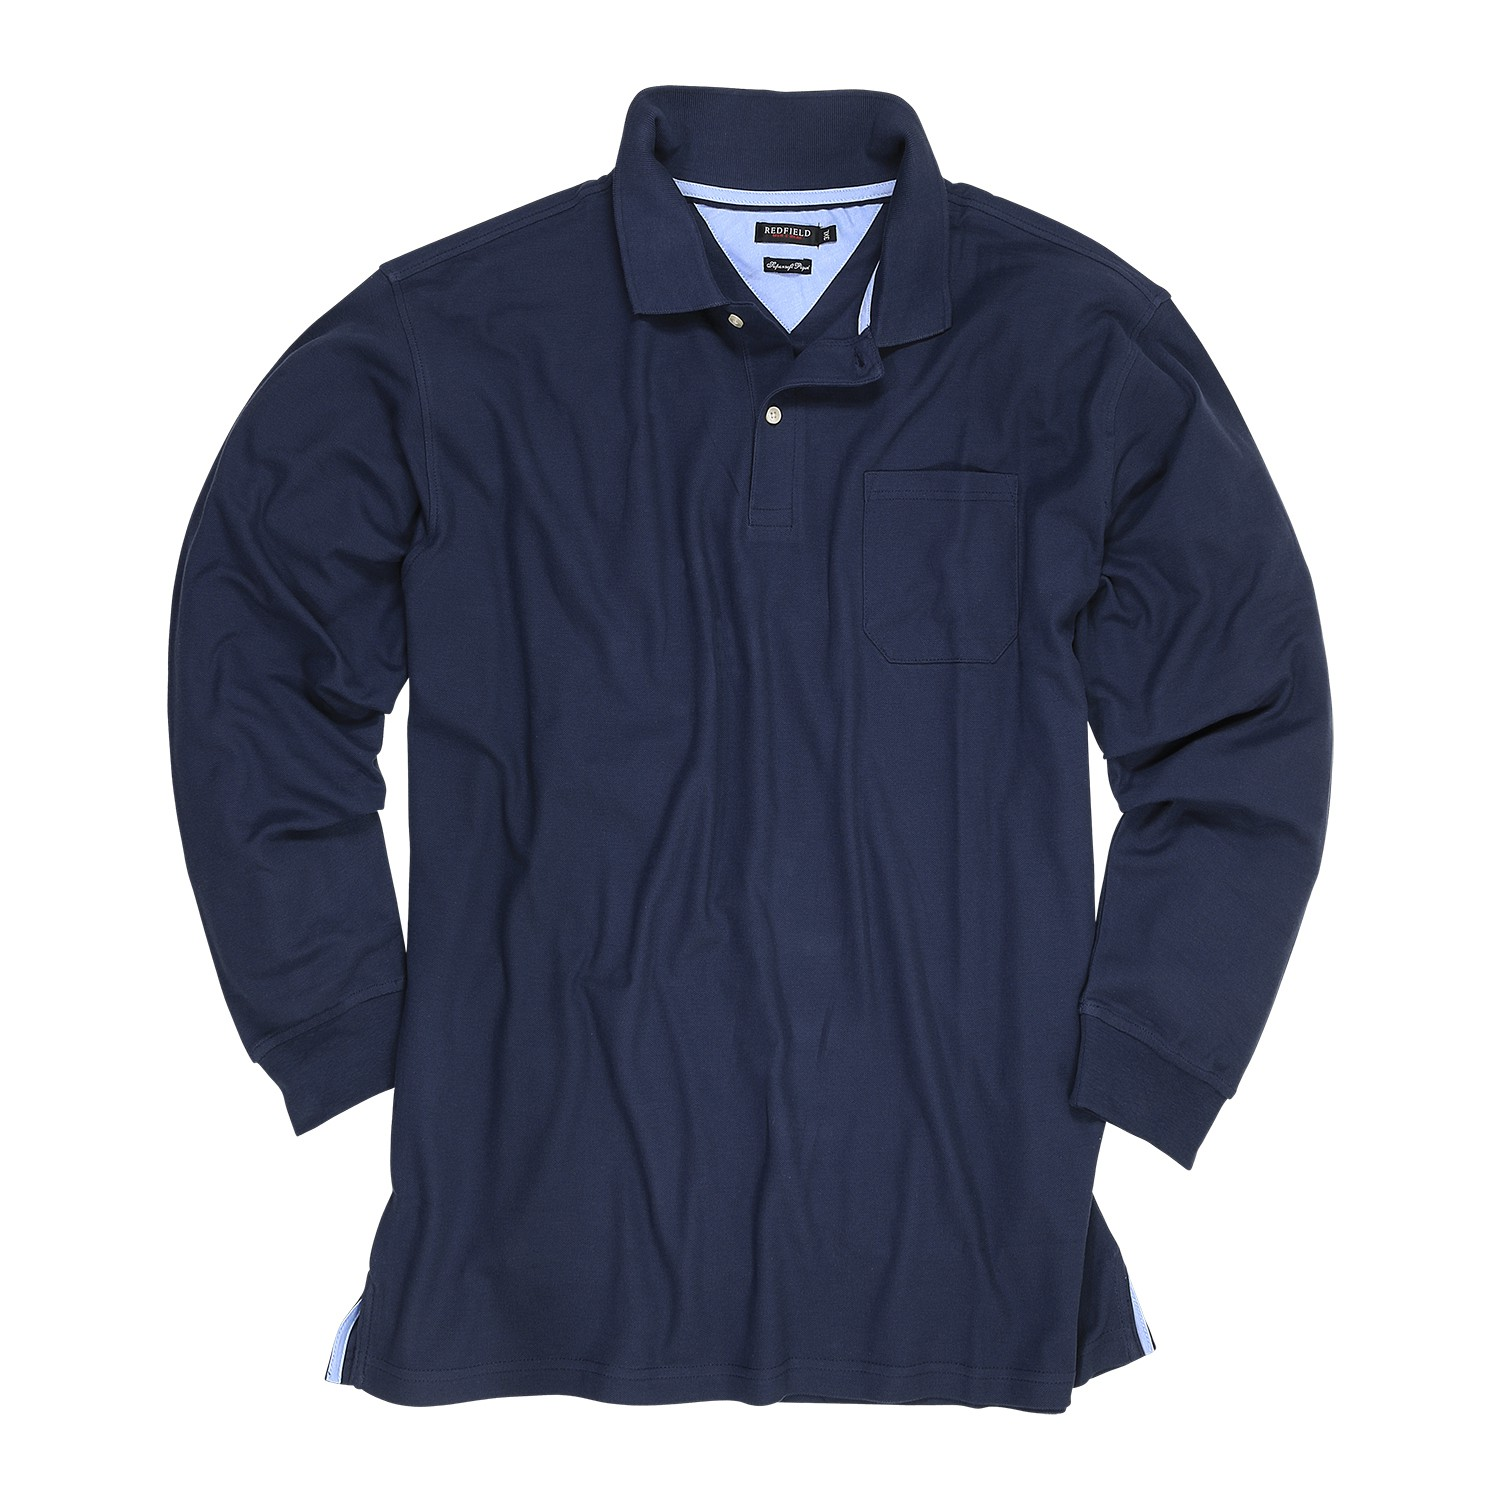 Detail Image to Bleu shirt by Redfield in plus sizes up to 8XL